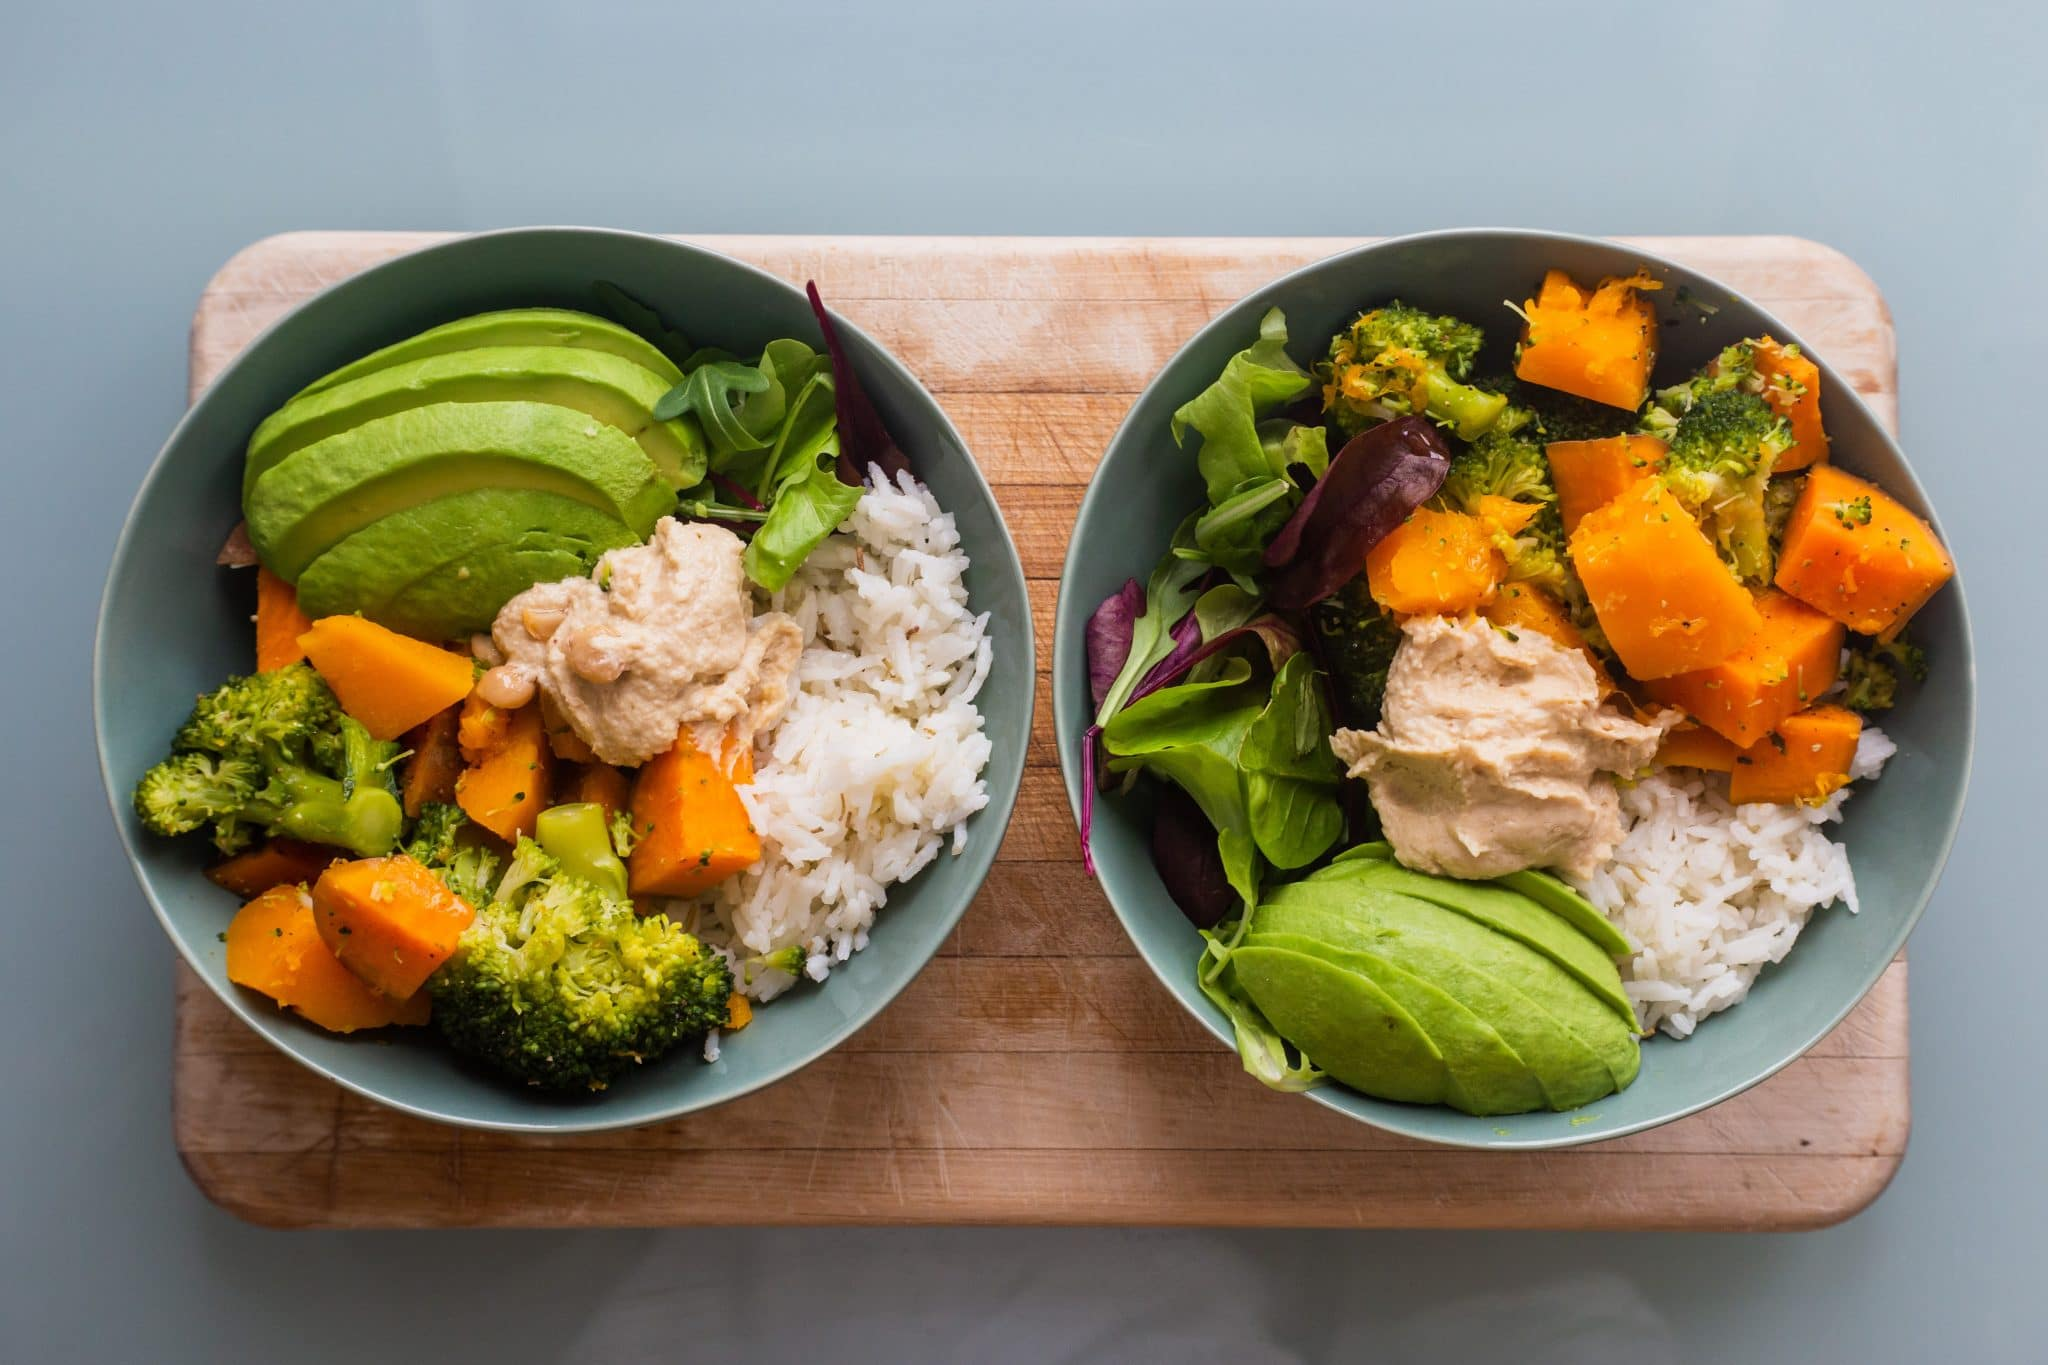 tips to make healthy vegan meals at home